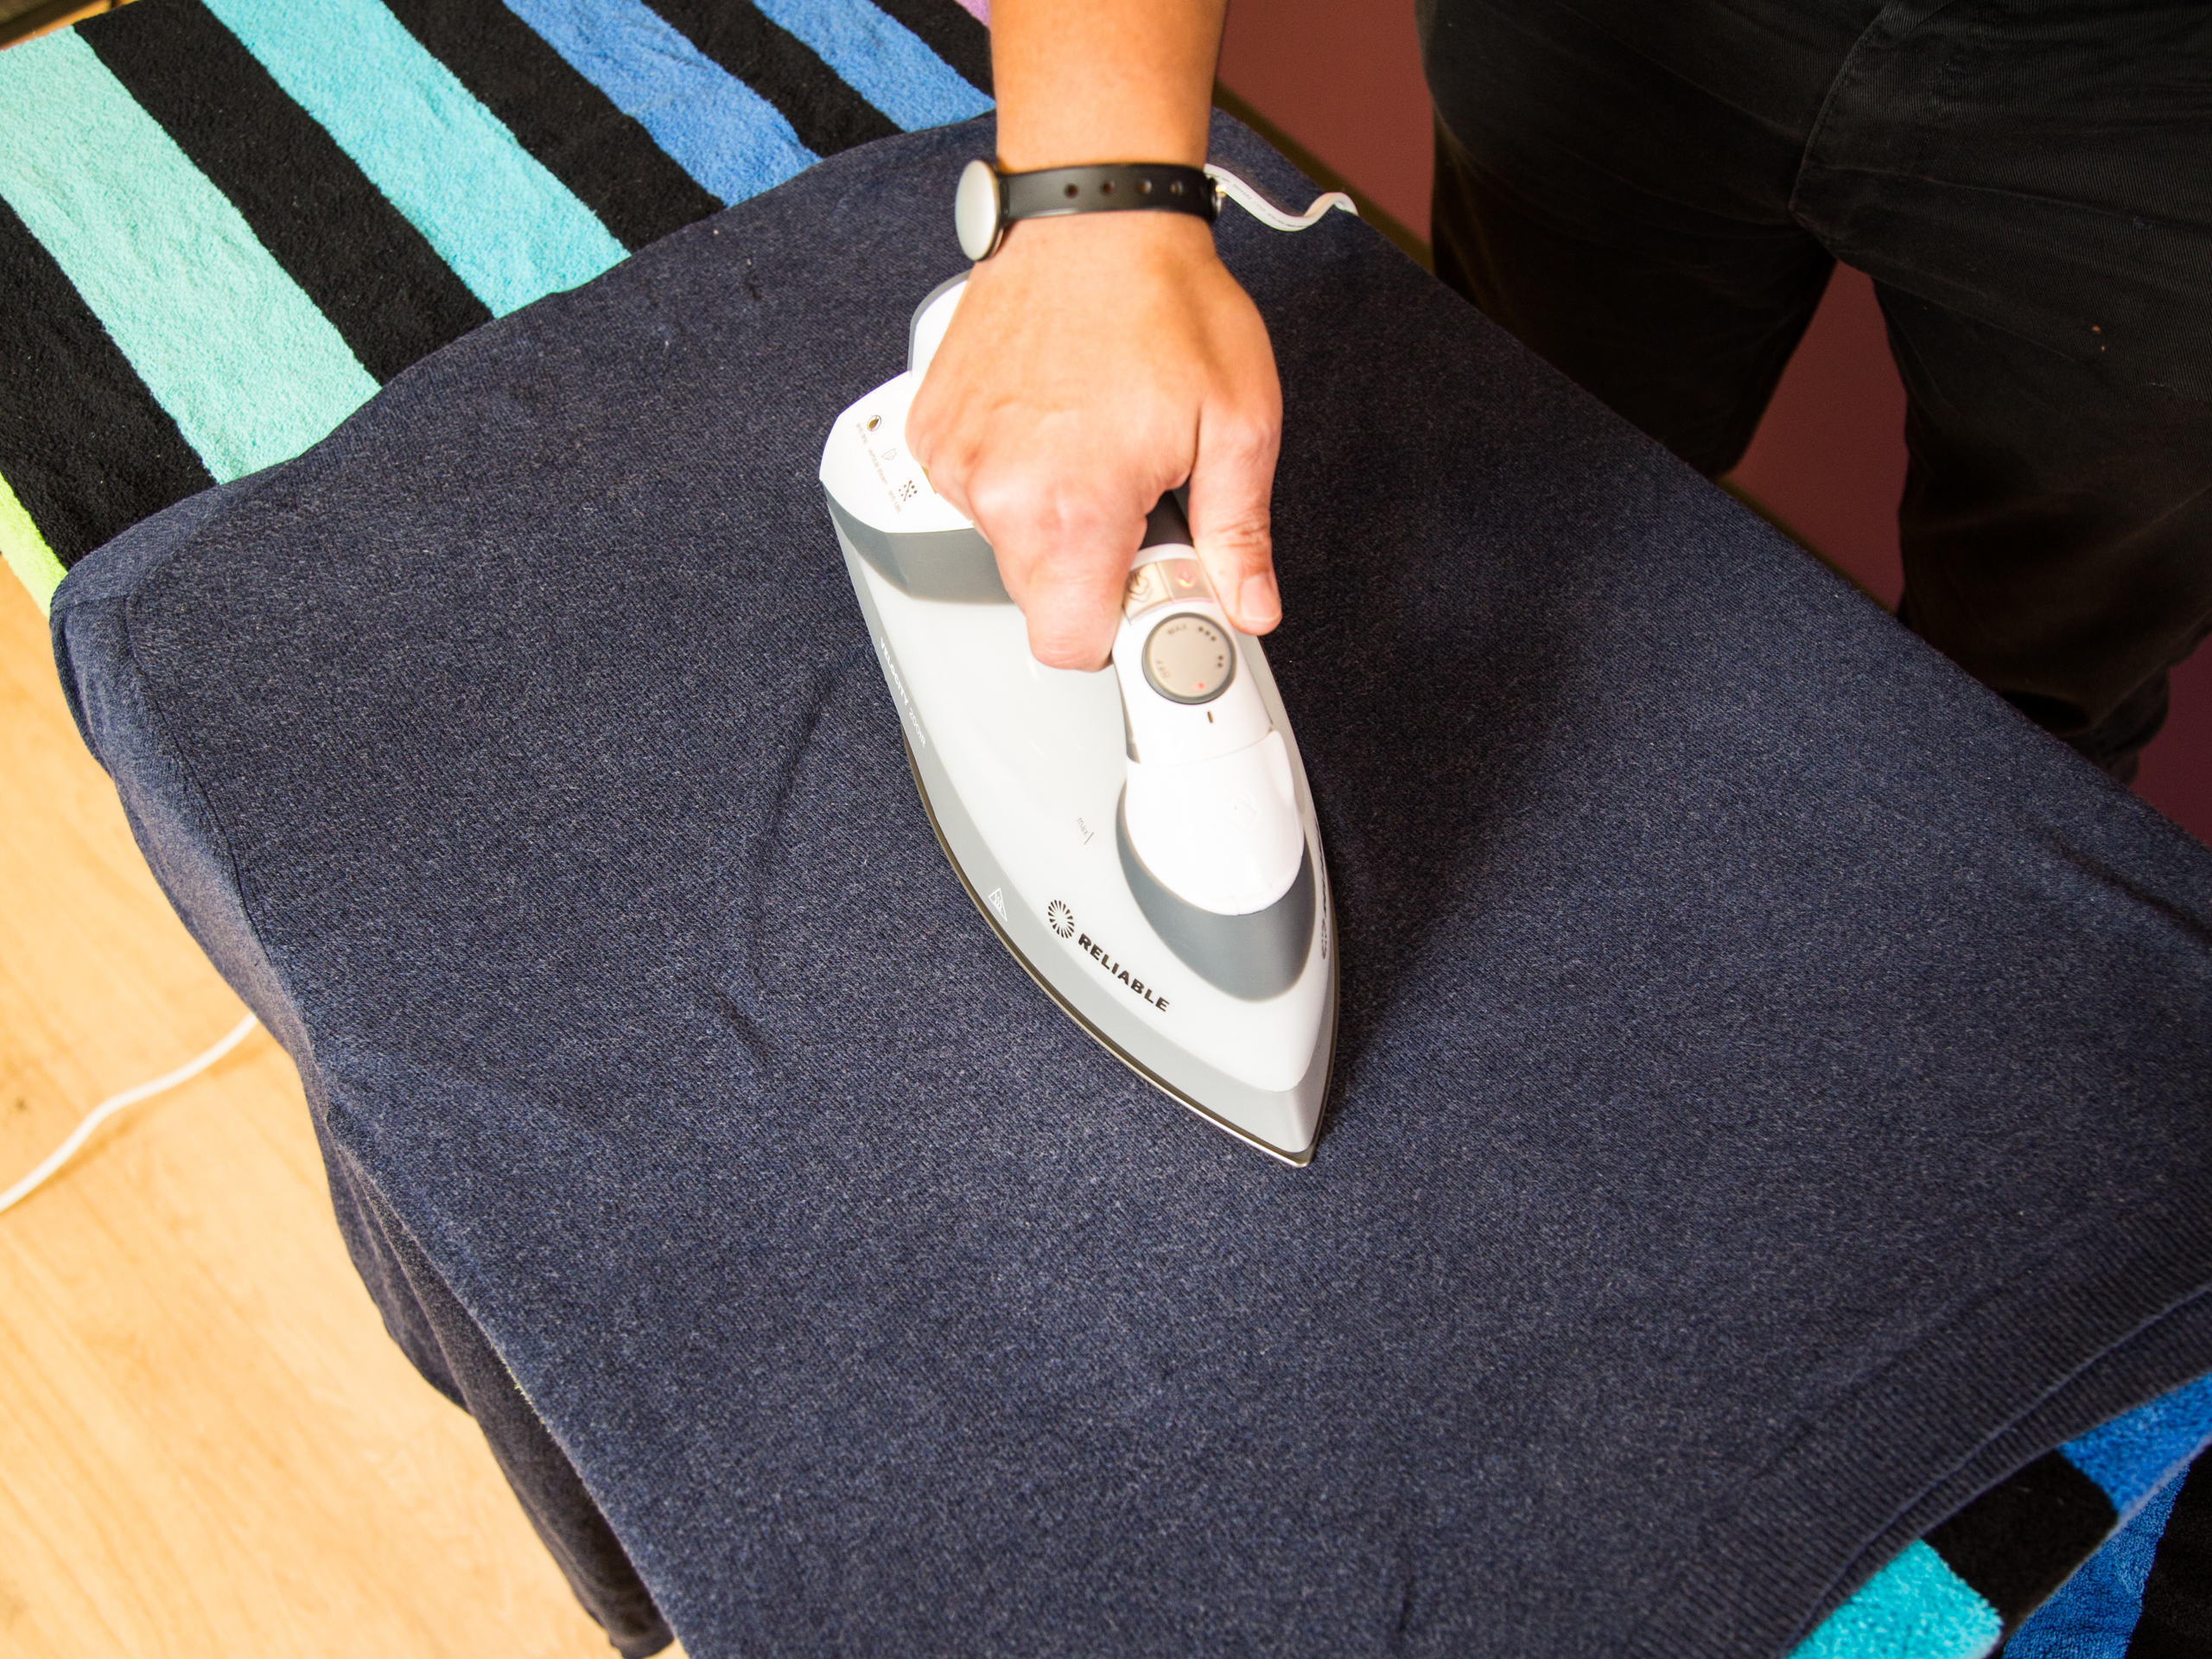 Ironing with ease